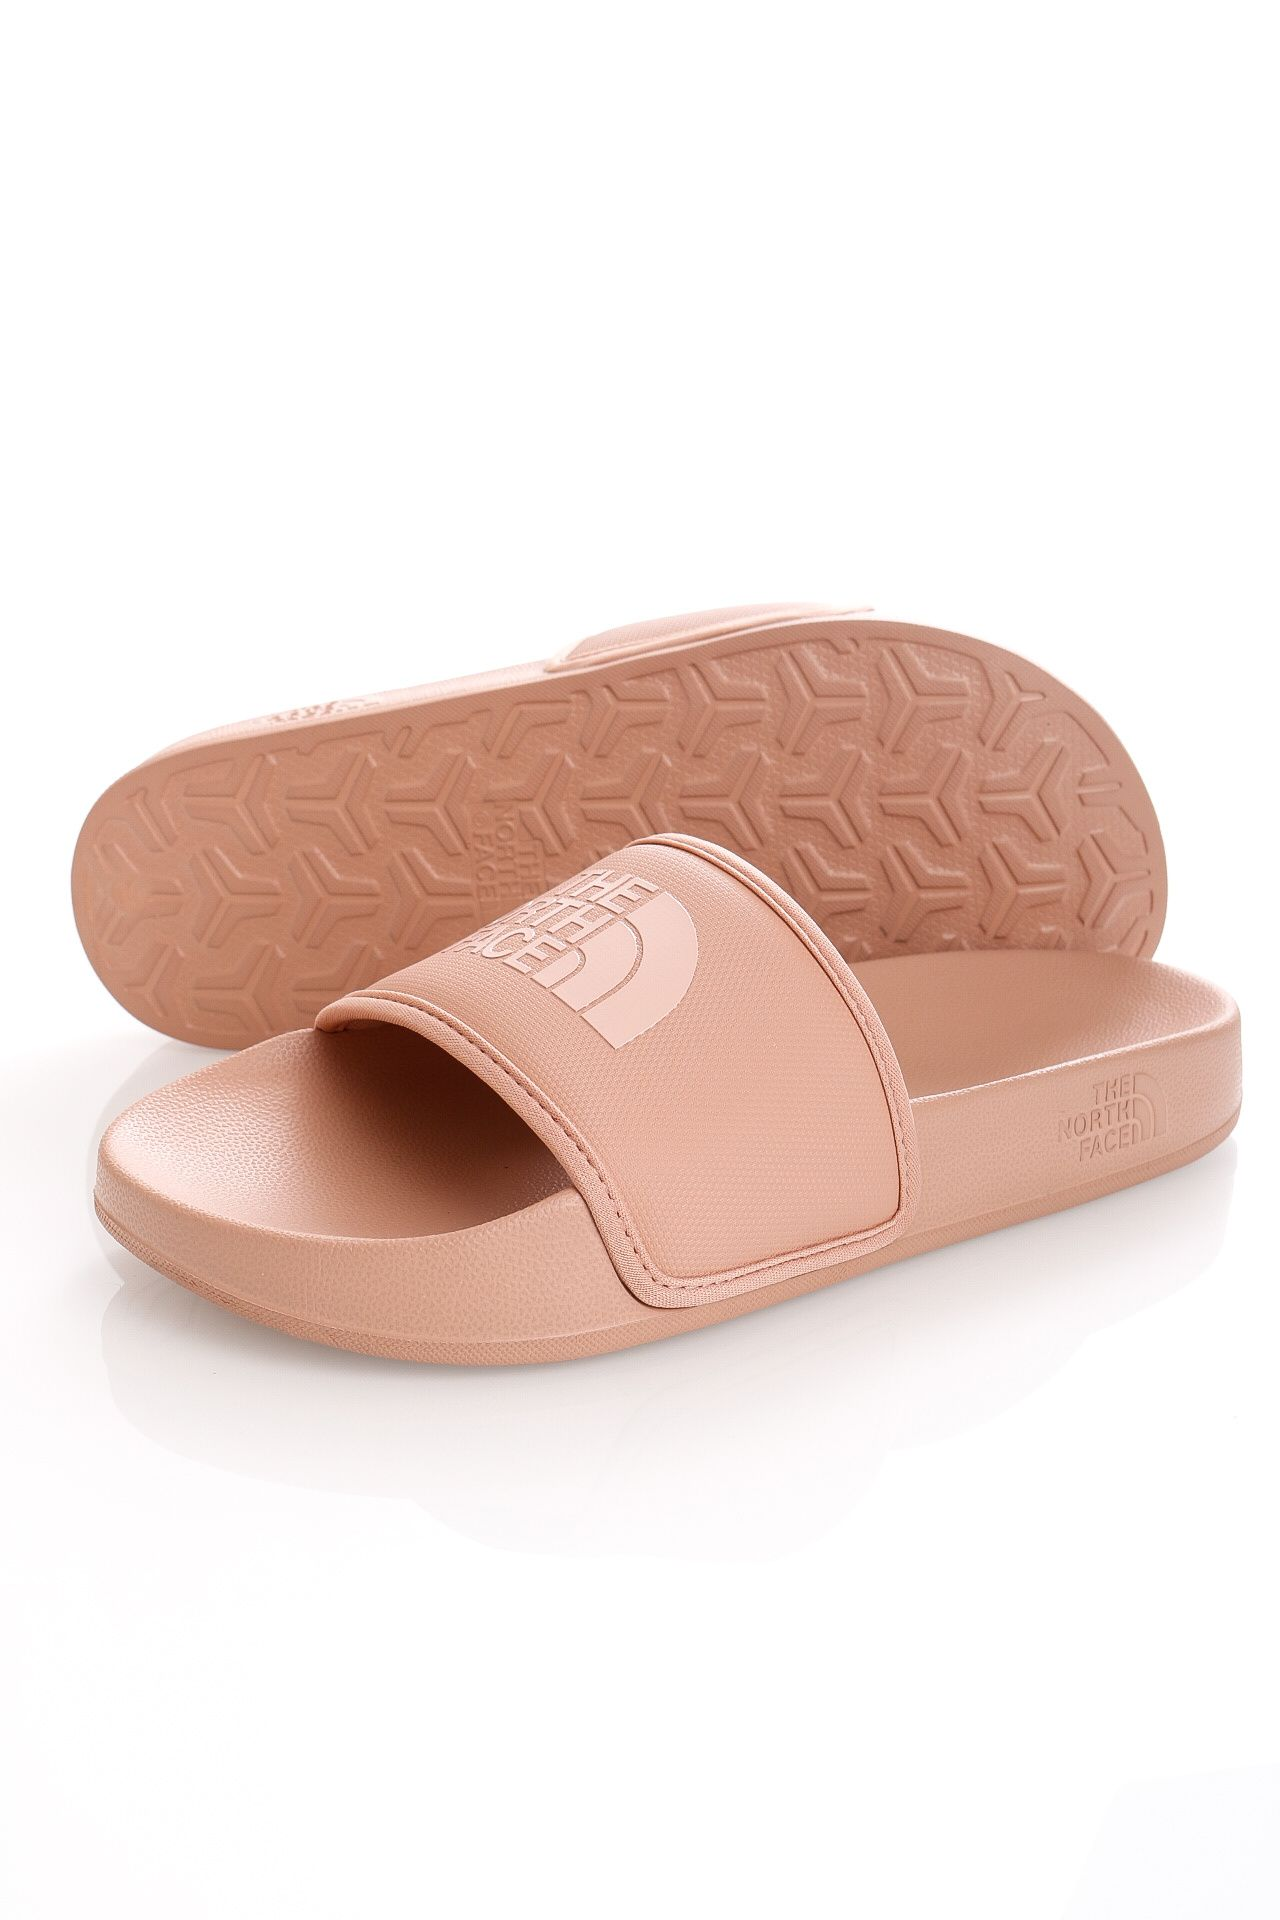 Afbeelding van The North Face Slippers Womens Base Camp Slide III Café Crème NF0A4T2SZ1P1